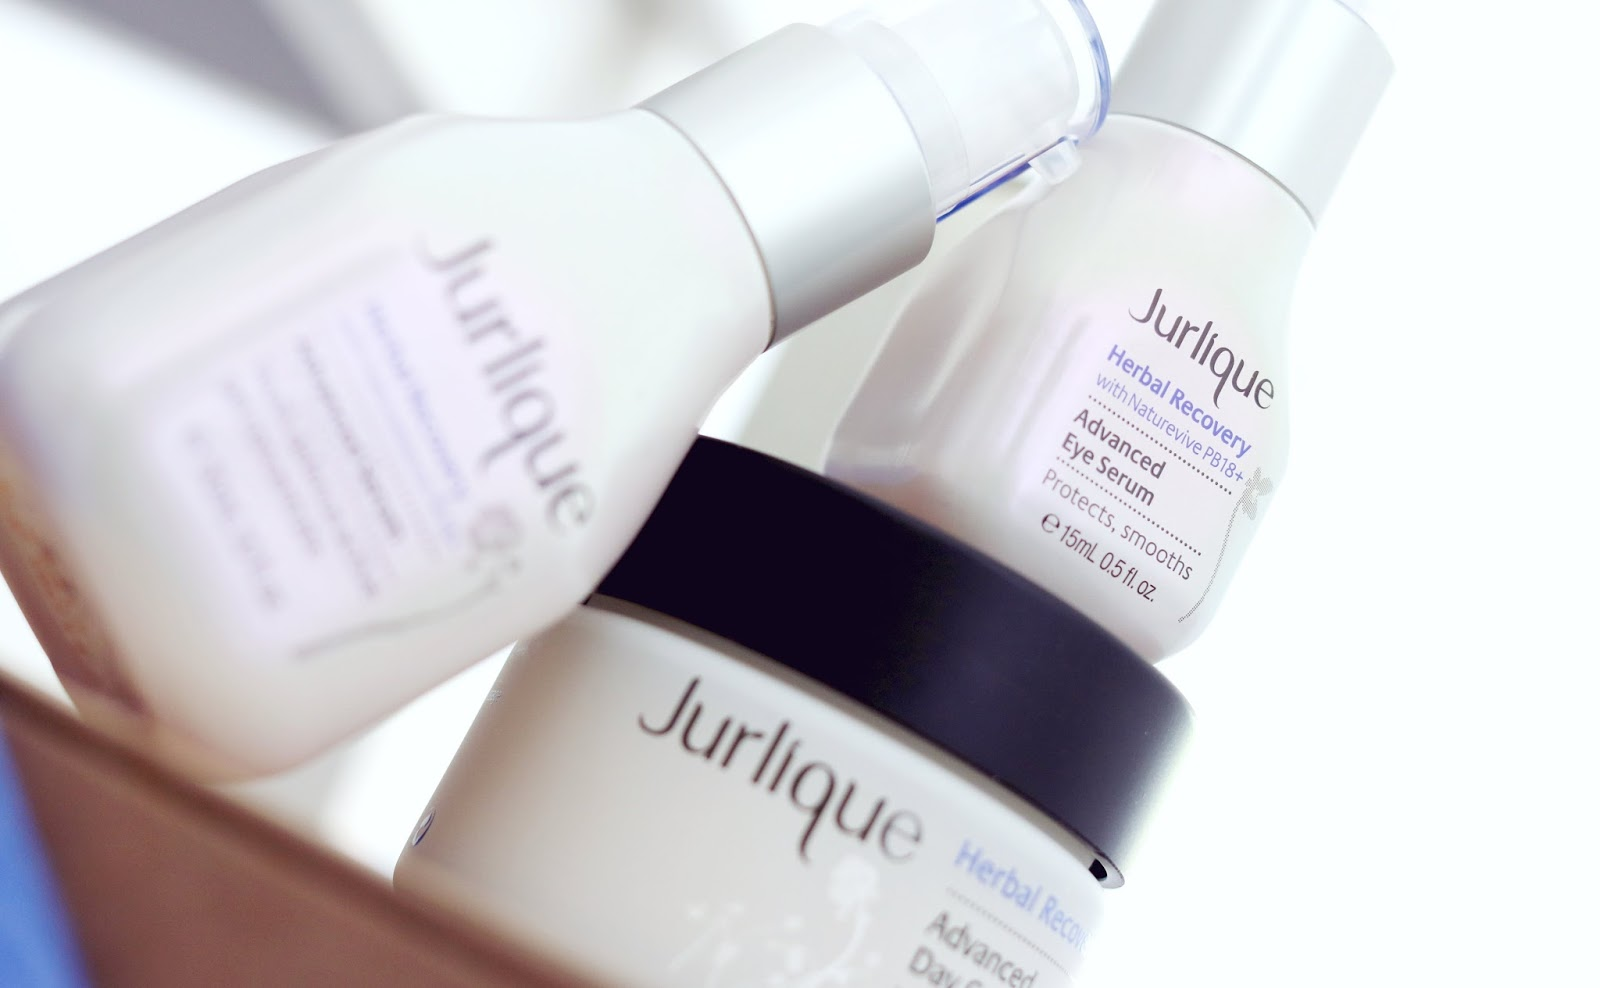 Jurlique Herbal Recovery Trio